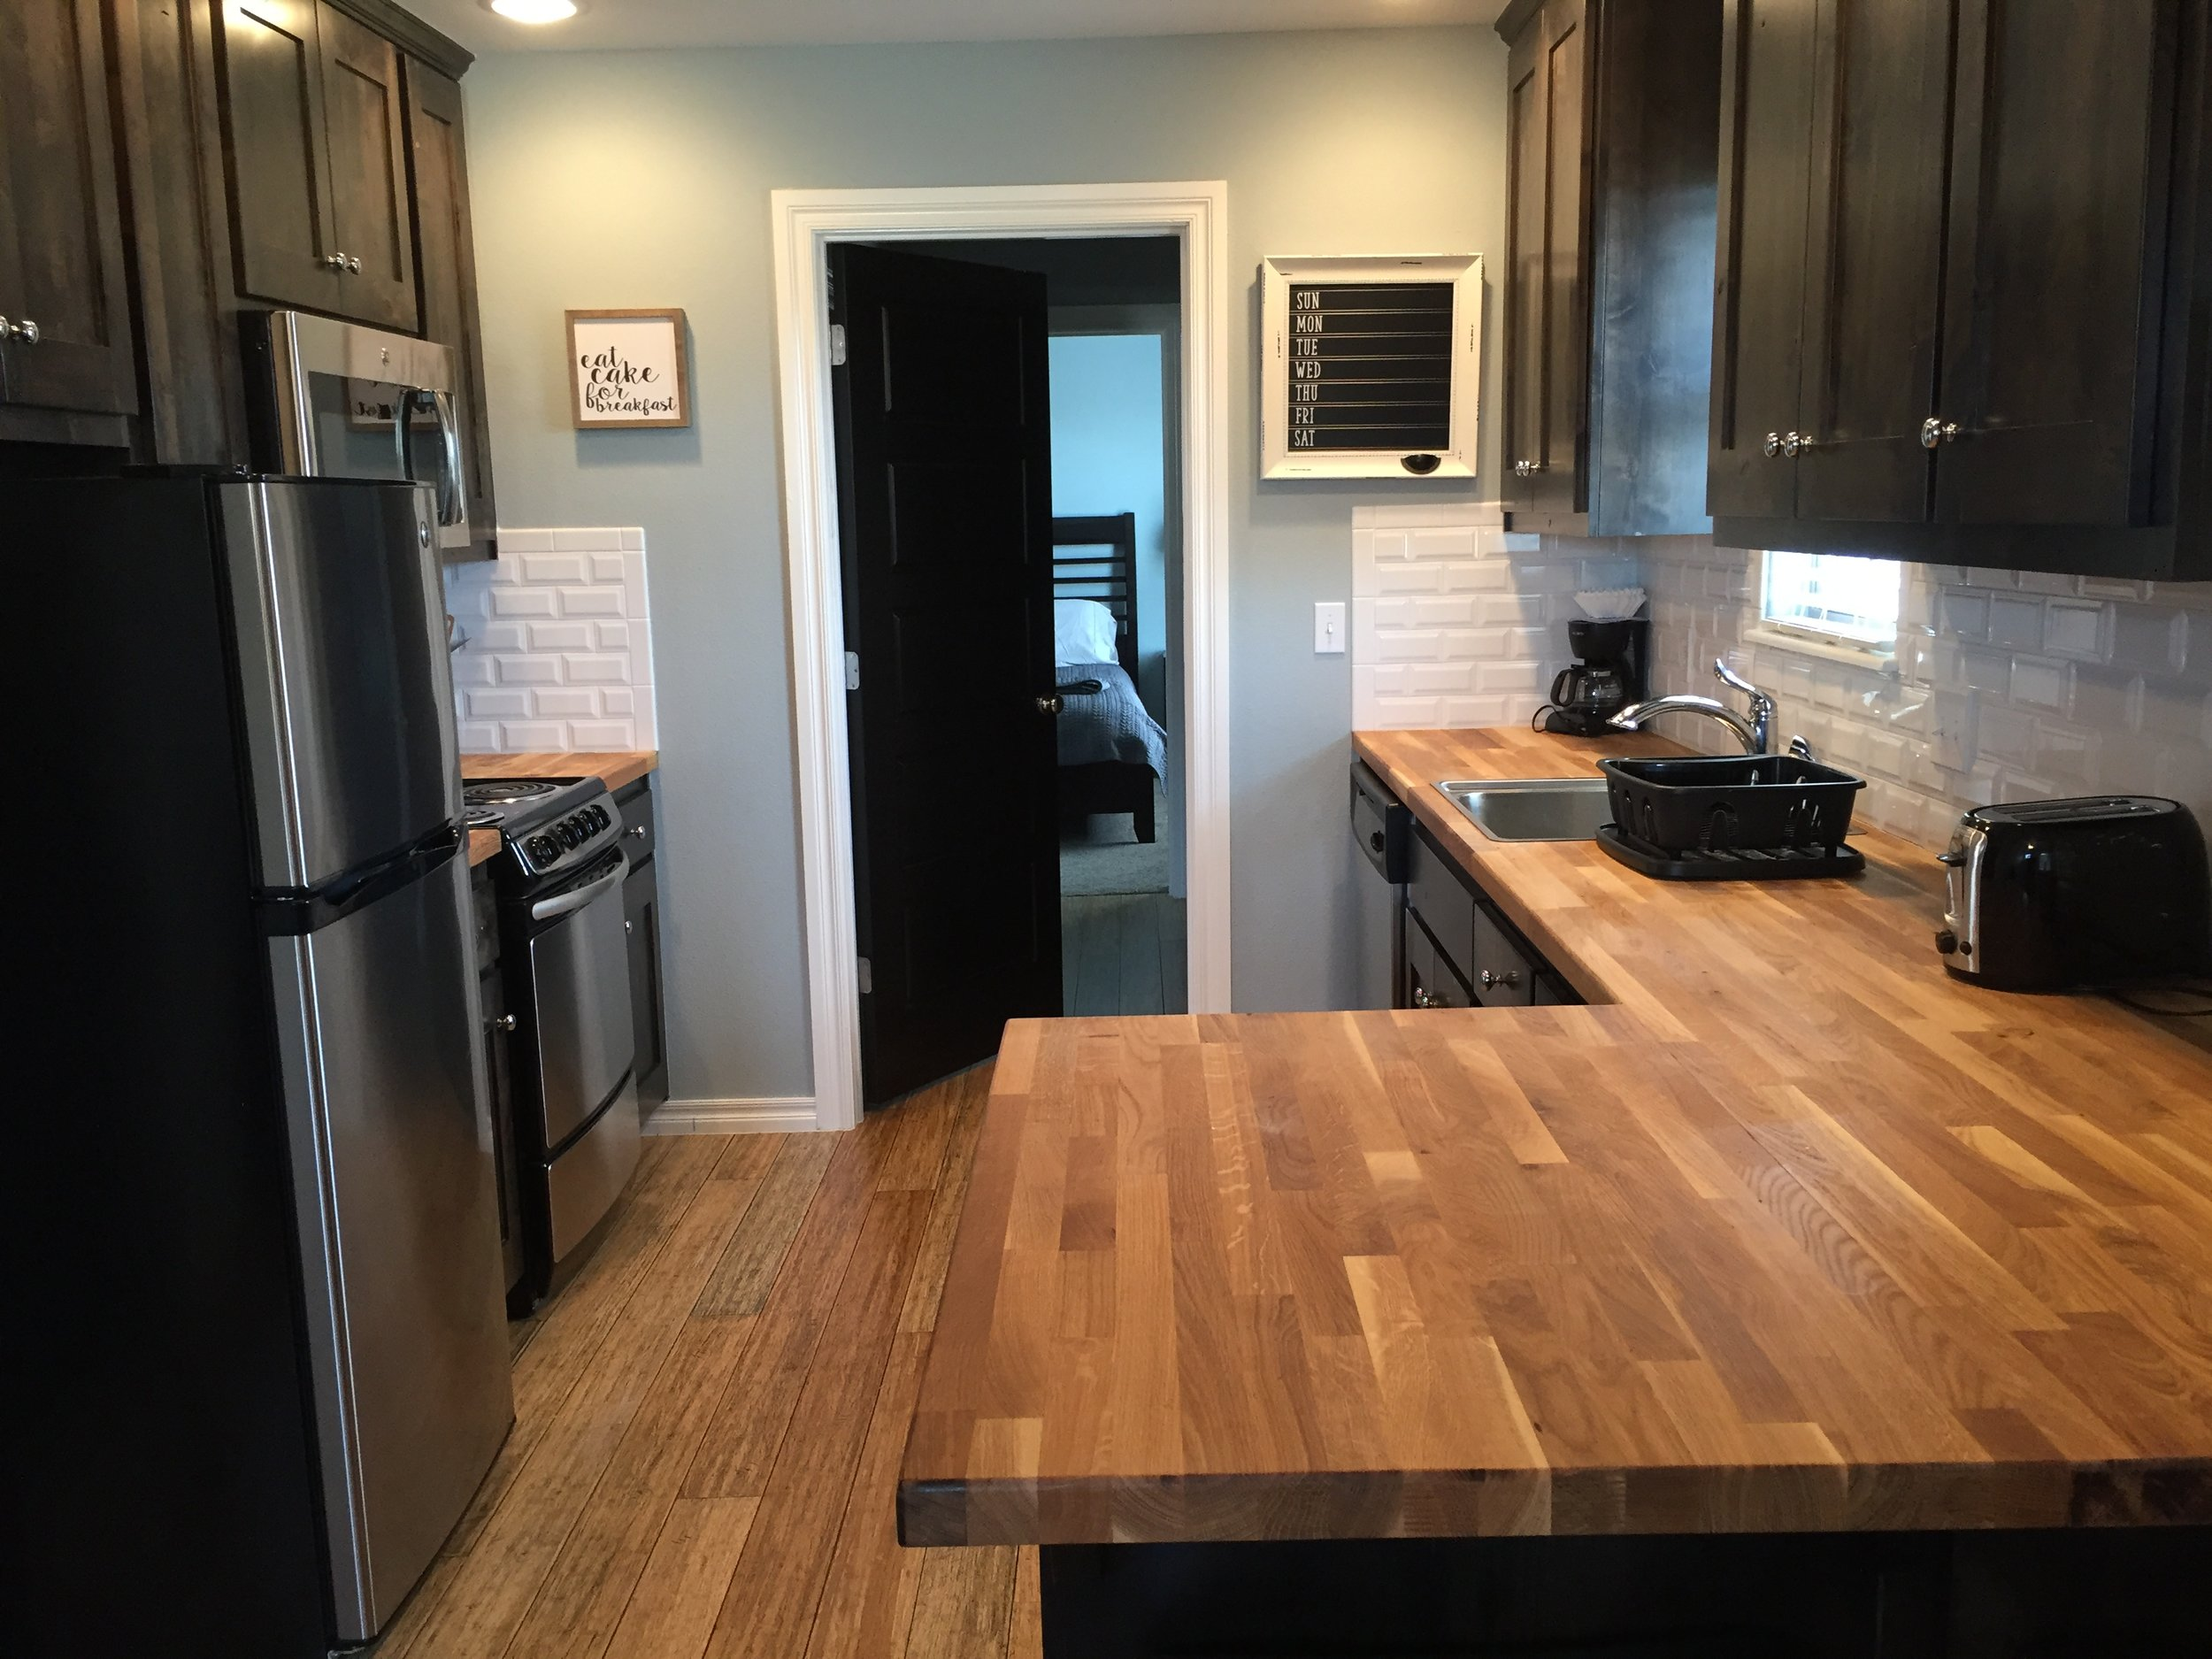 Clubhouse Cottages West 3404 A Kitchen.jpg